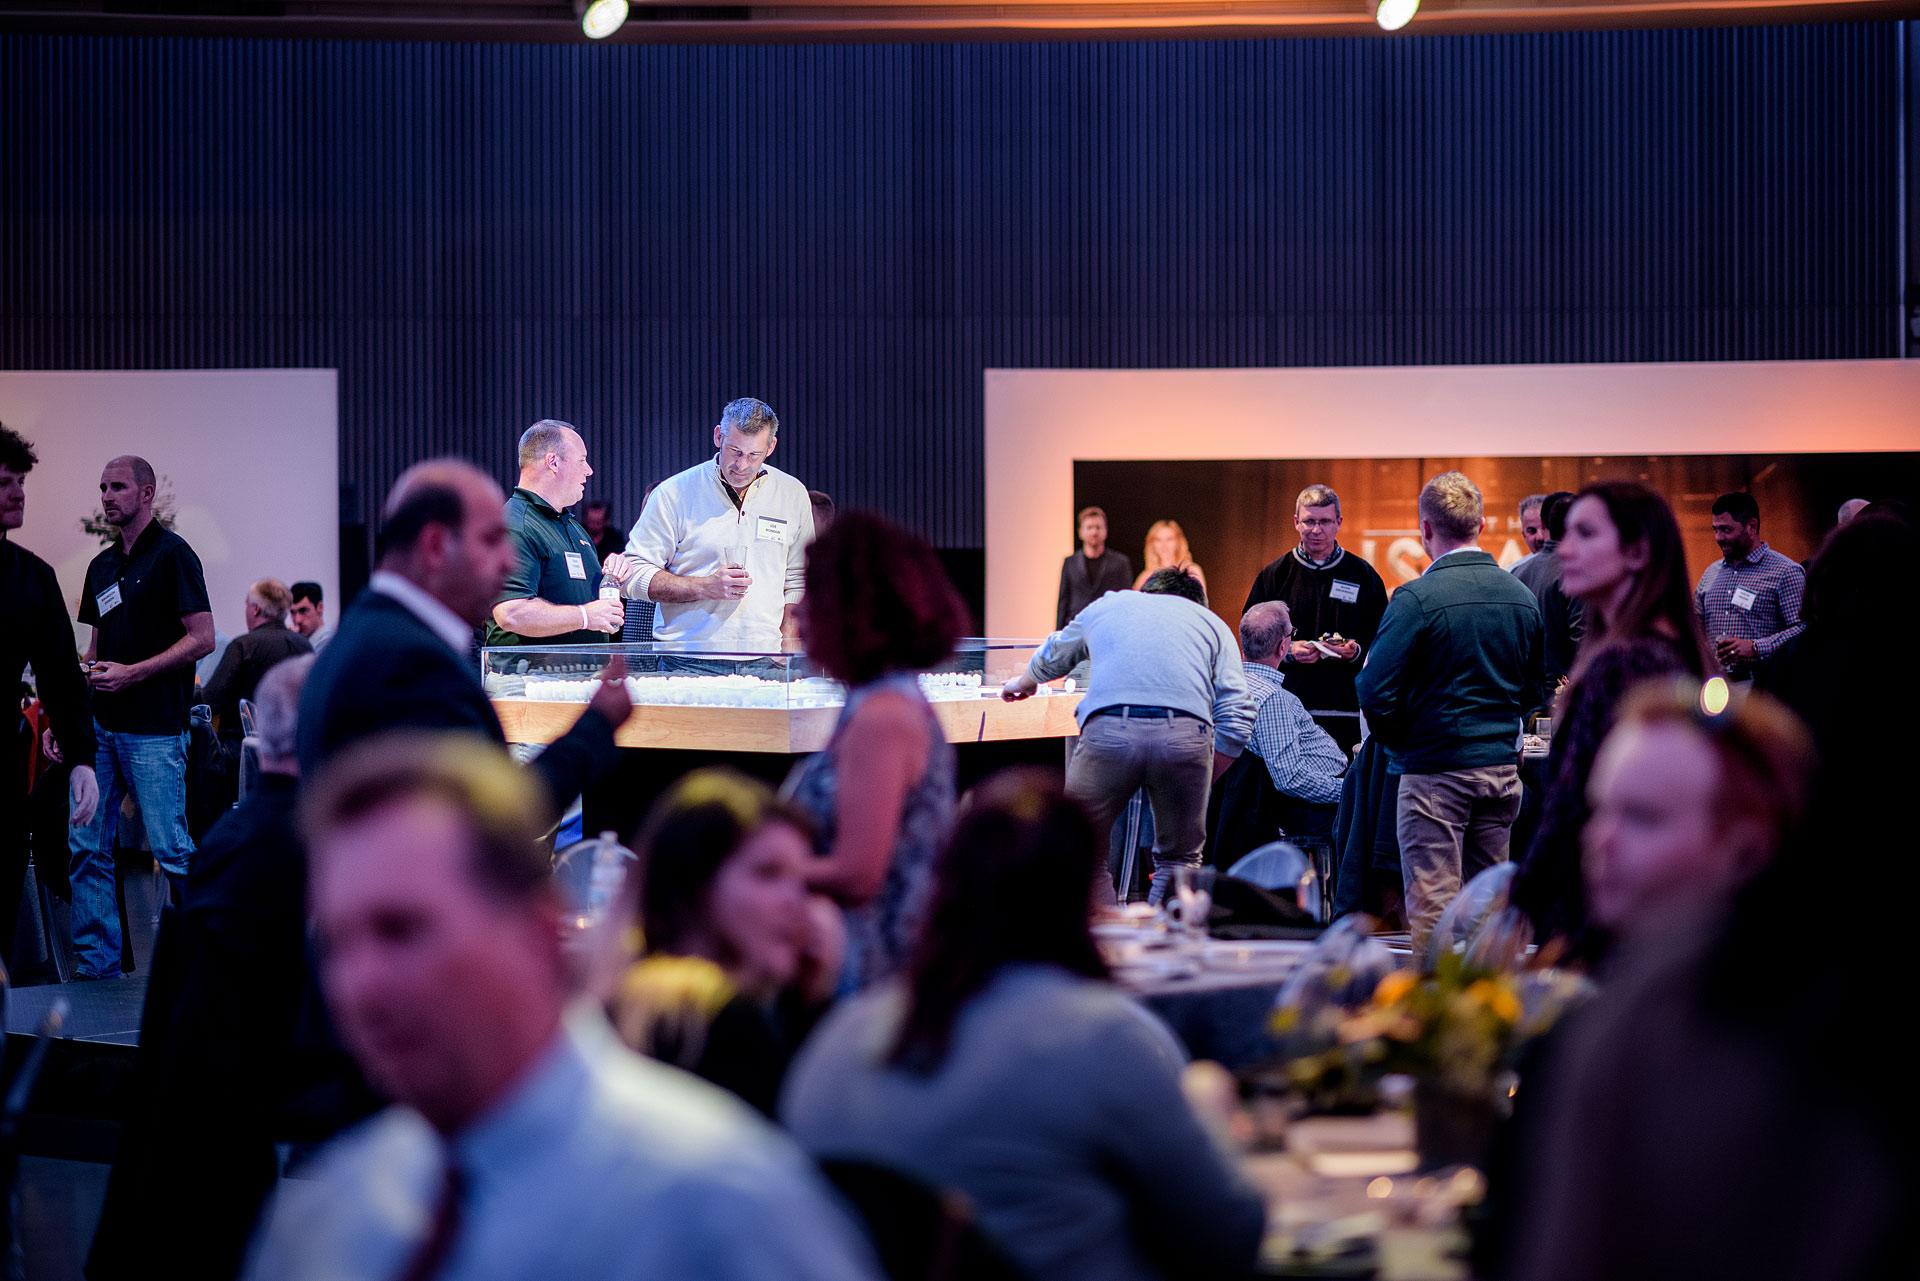 Corporate Event Photography Michigan Natural Light Res48